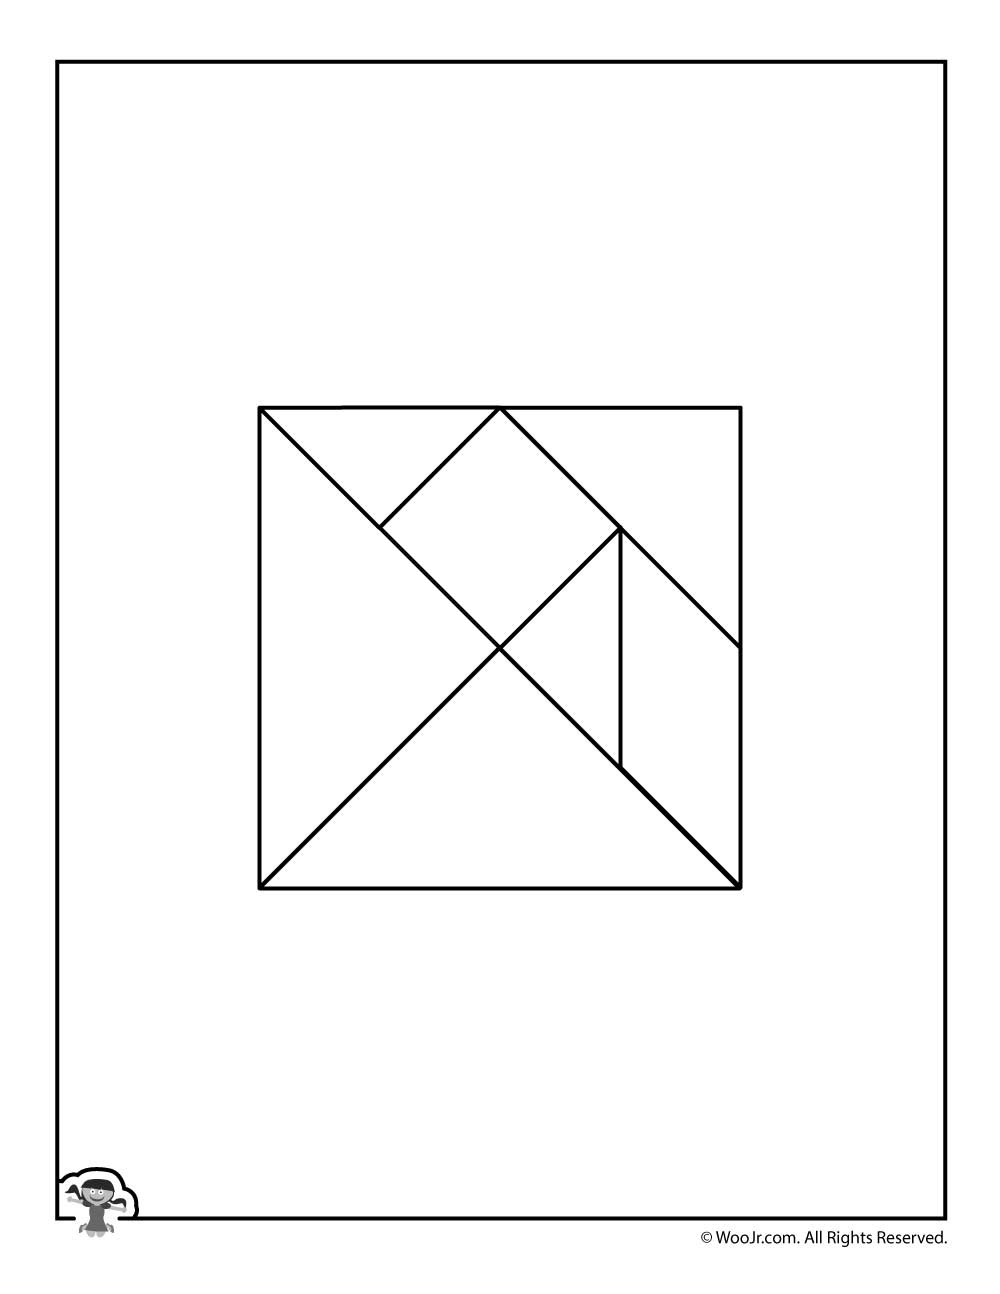 Color Your Own Printable Tangram Puzzle Pieces | Woo! Jr. Kids - Printable Tangram Puzzle Pieces